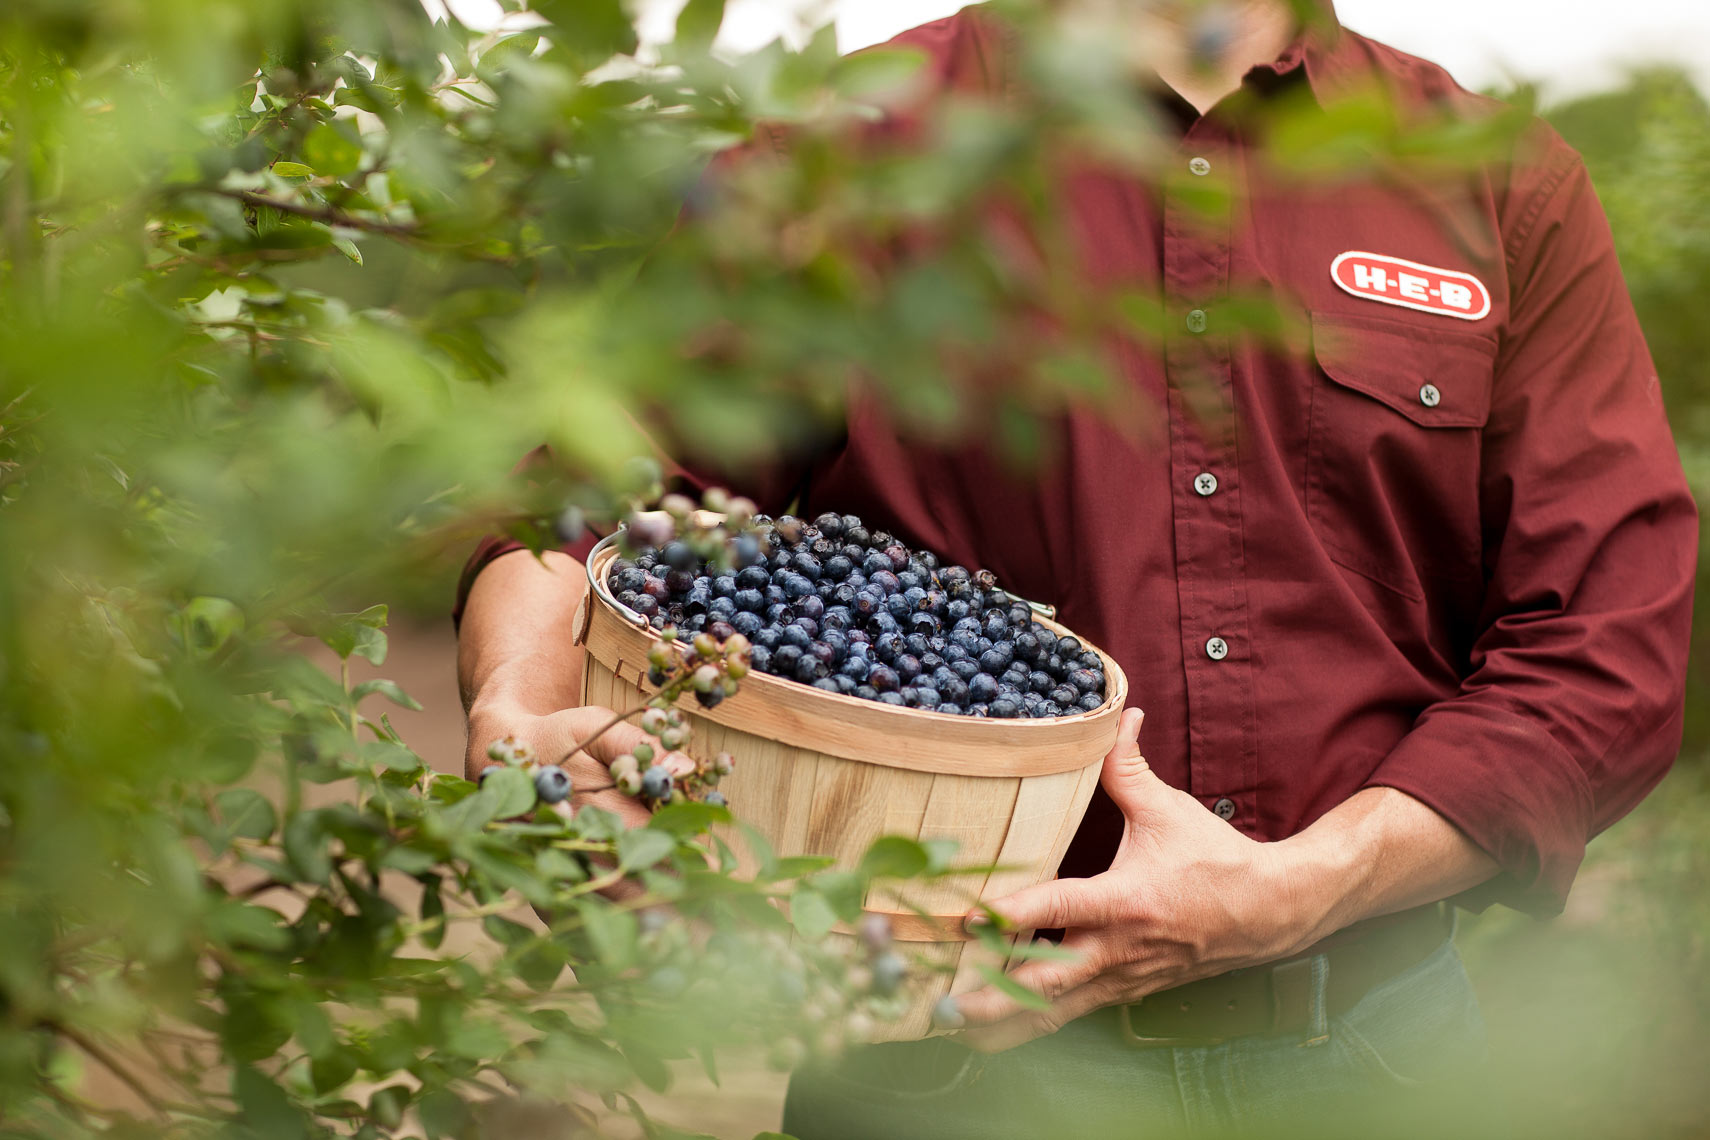 heb-blueberries-produce-department-jason-risner-photography-8947